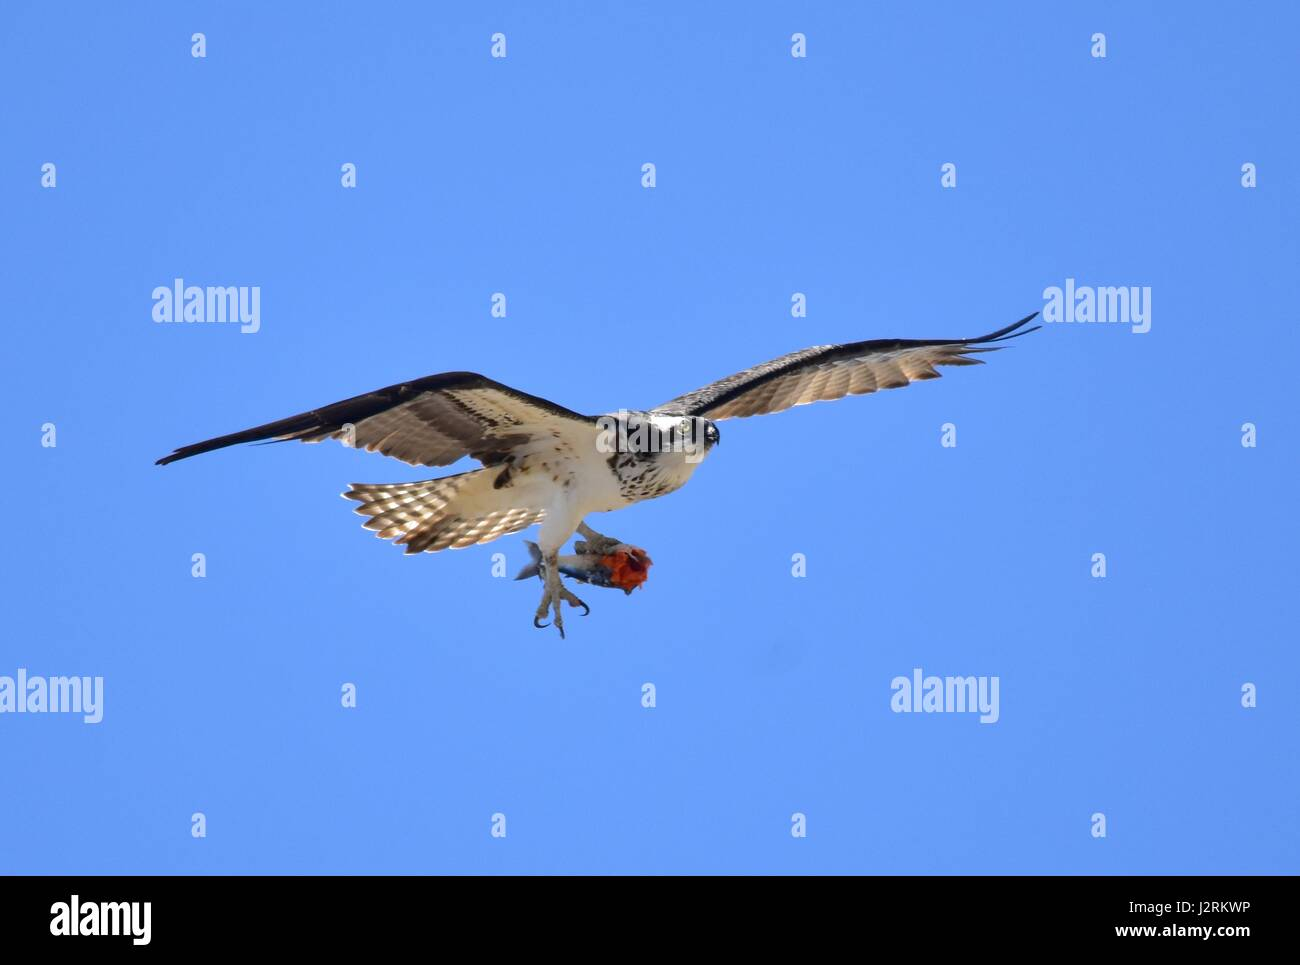 An osprey with half eaten fish in its talons flies in the Seedskadee National Wildlife Refuge April 15, 2017 in - Stock Image